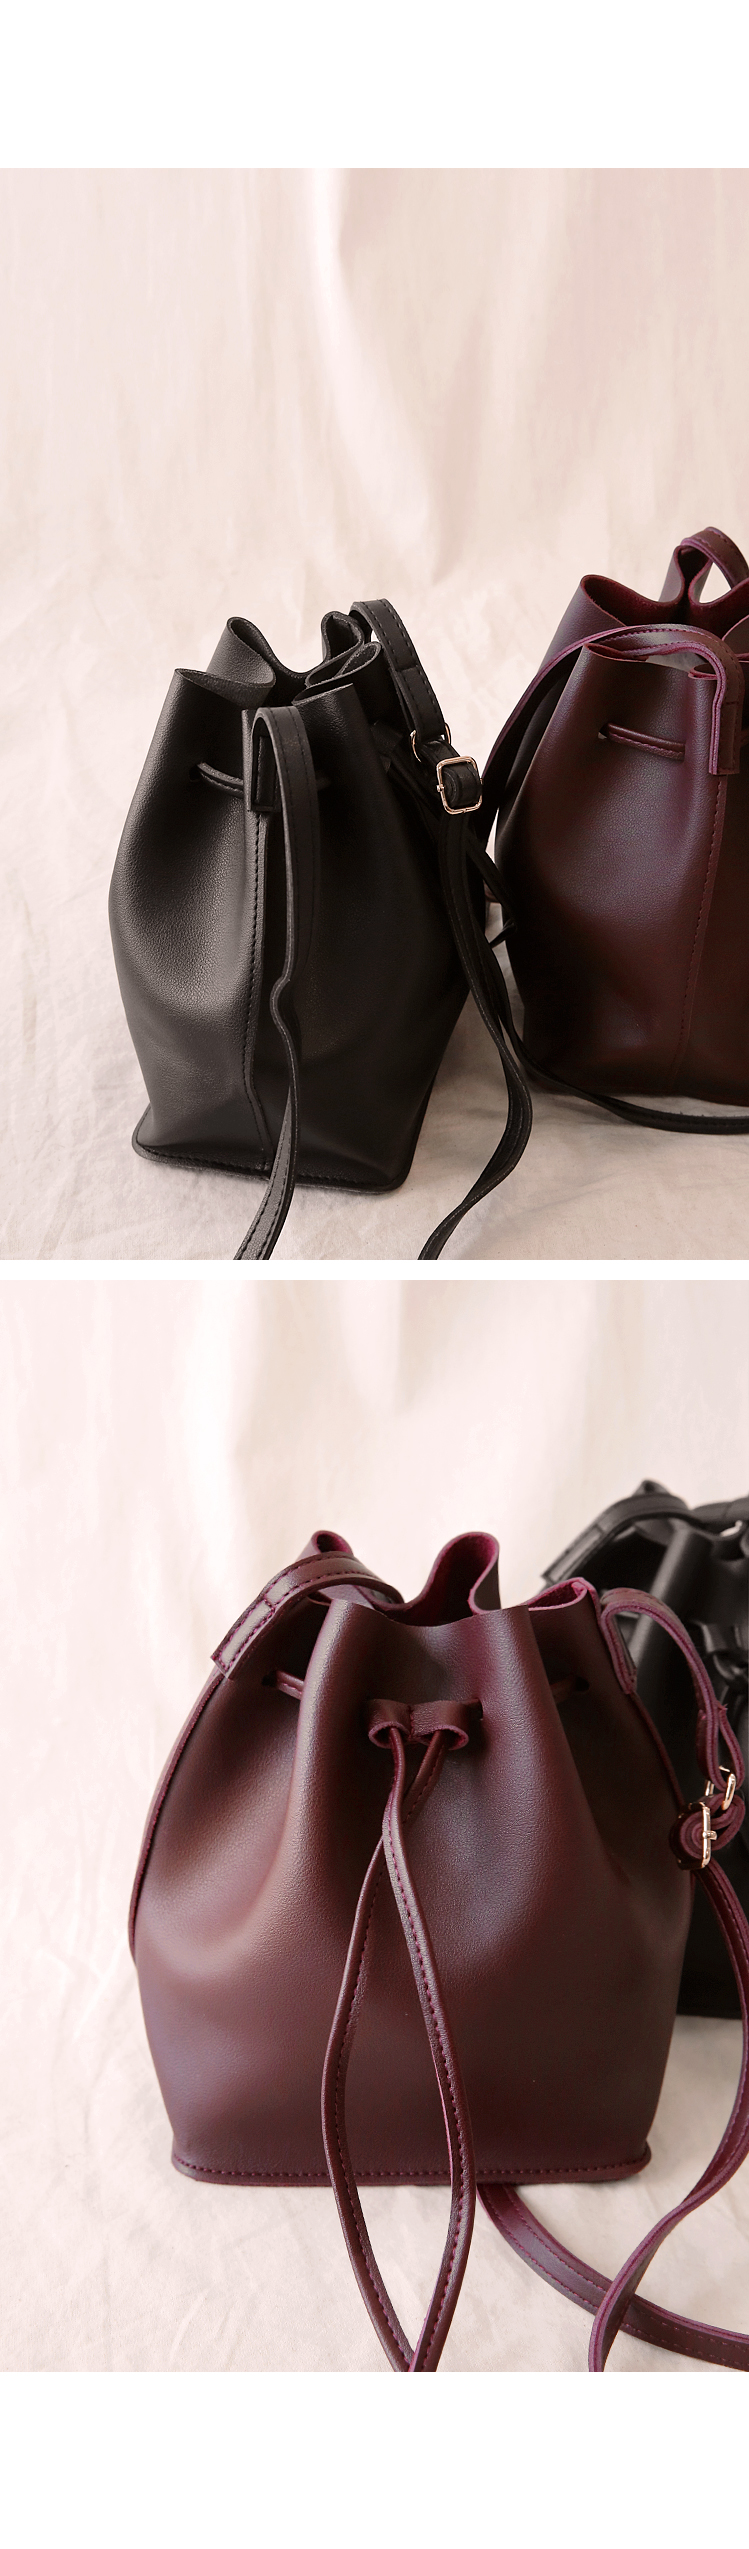 DAILY LEATHER MINI BUCKET BAG